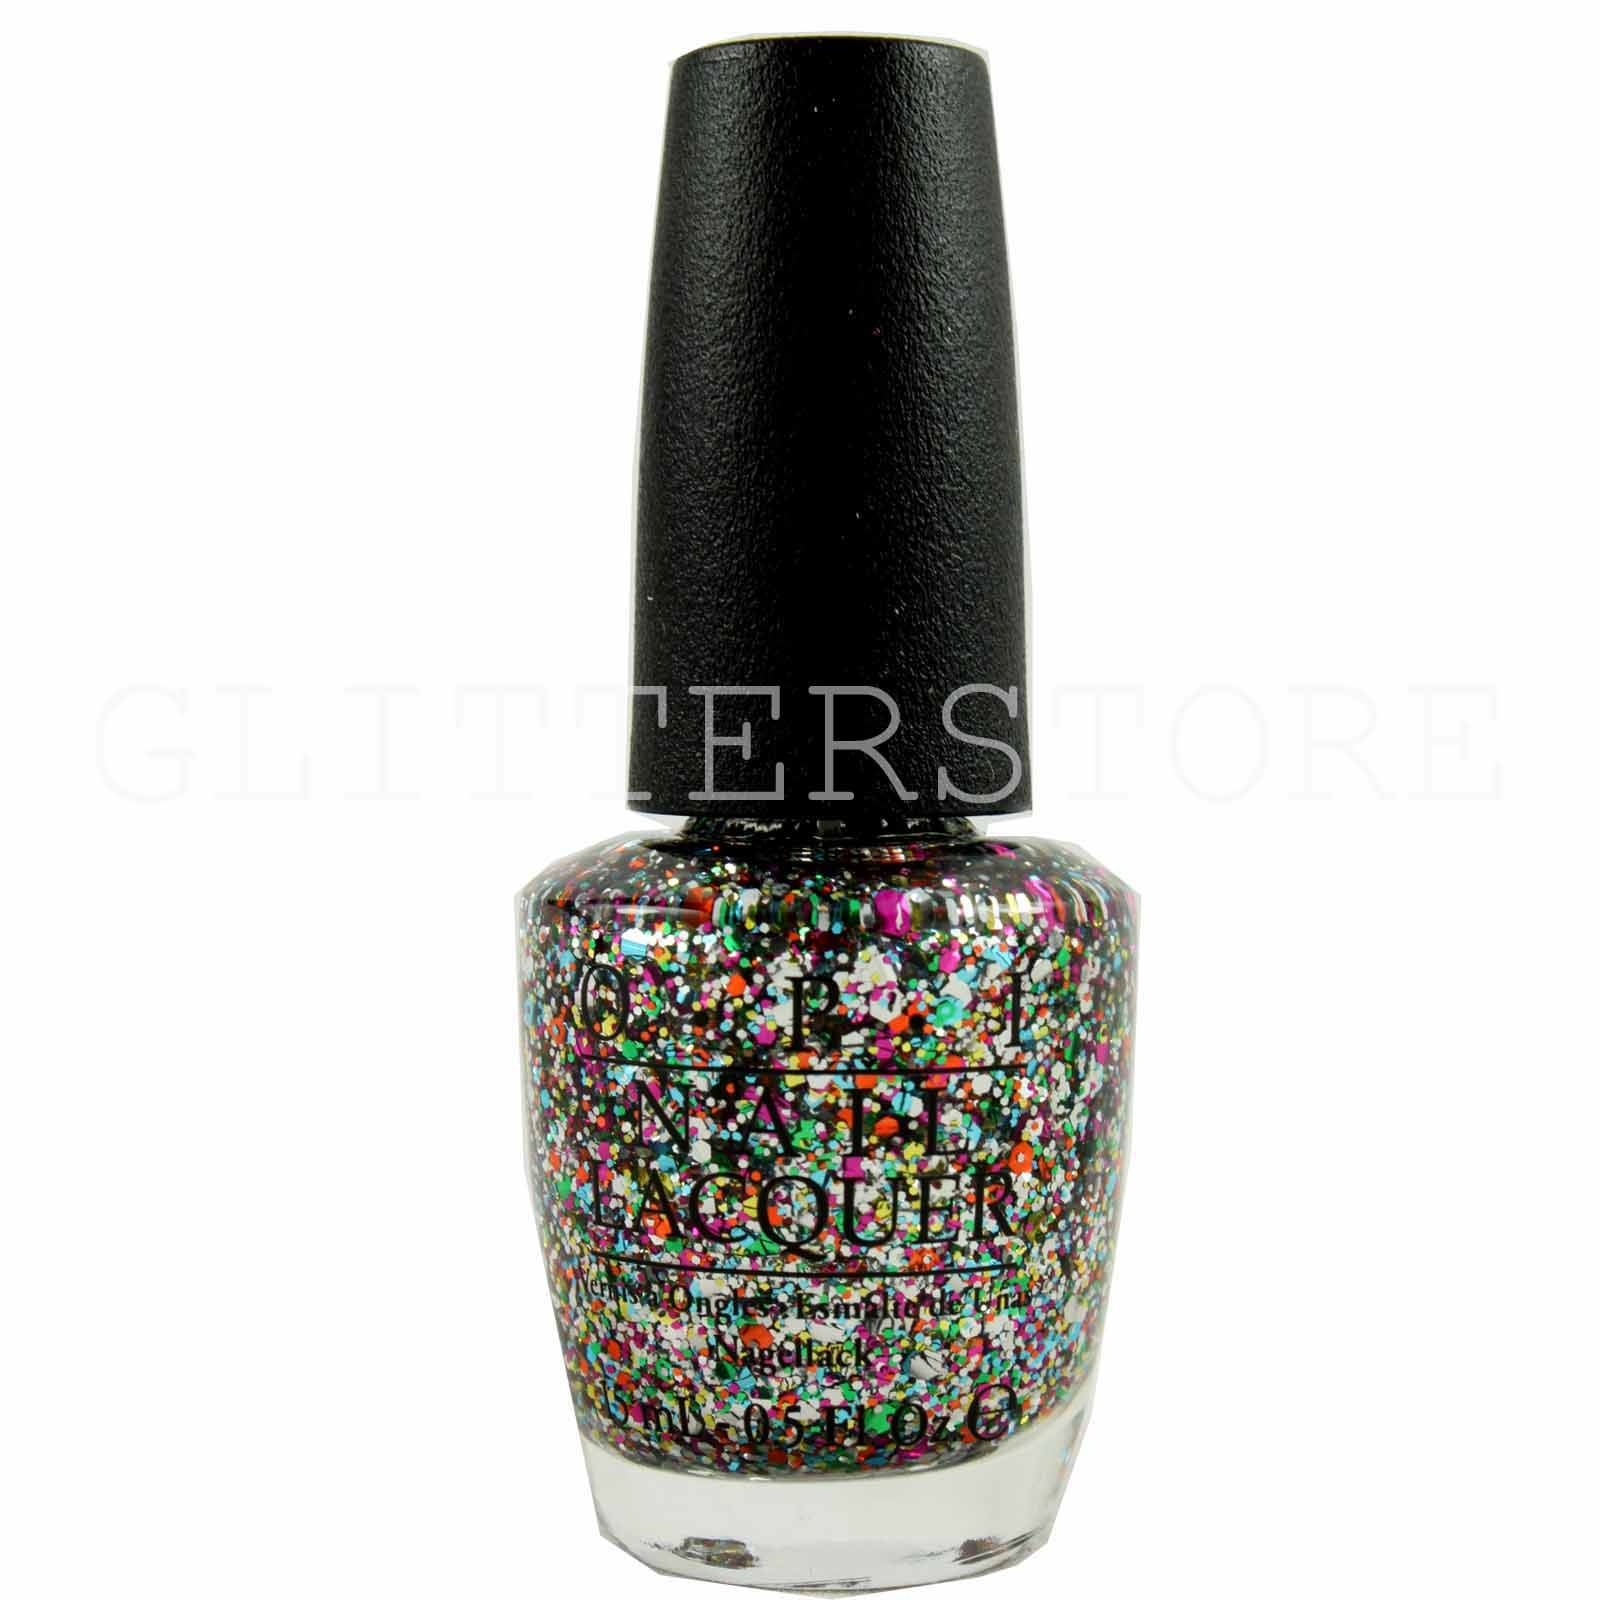 Shimmer And Sparkle Nail Polish: Opi Nail Varnish Spotlight On Glitter Collection Nail